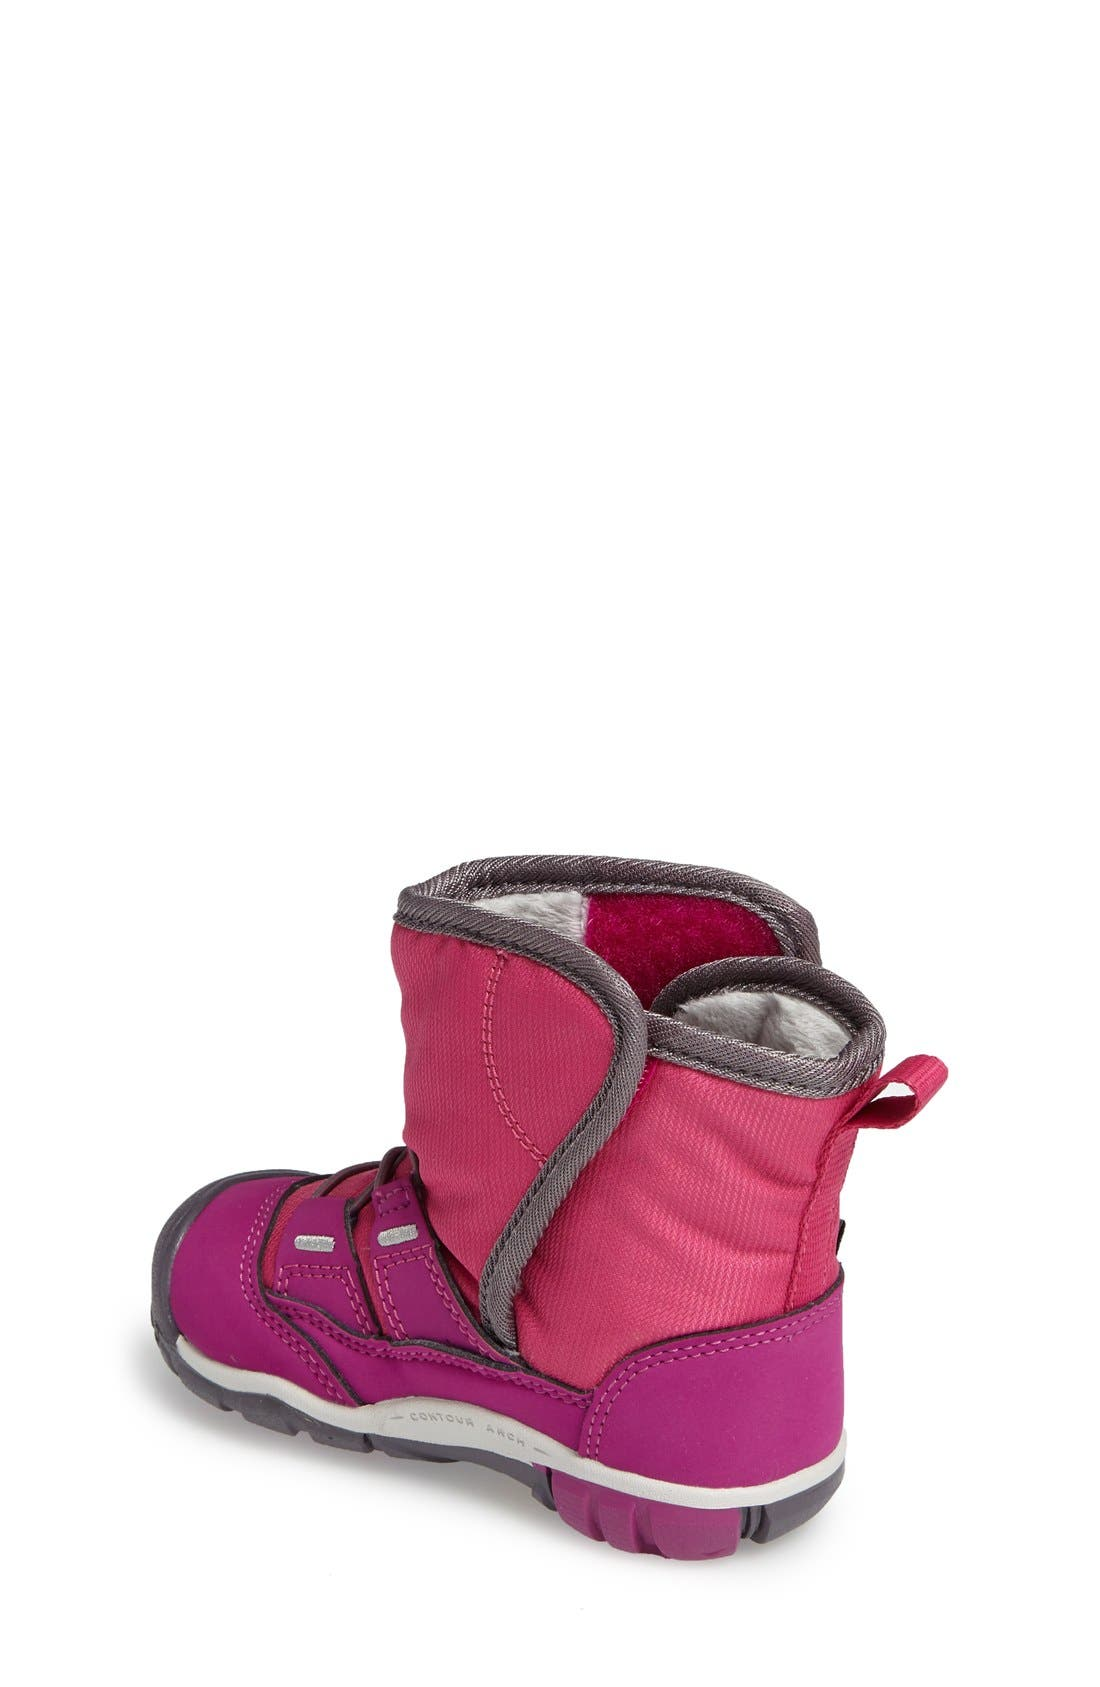 Peek-A-Boot Fleece Lined Boot,                             Alternate thumbnail 20, color,